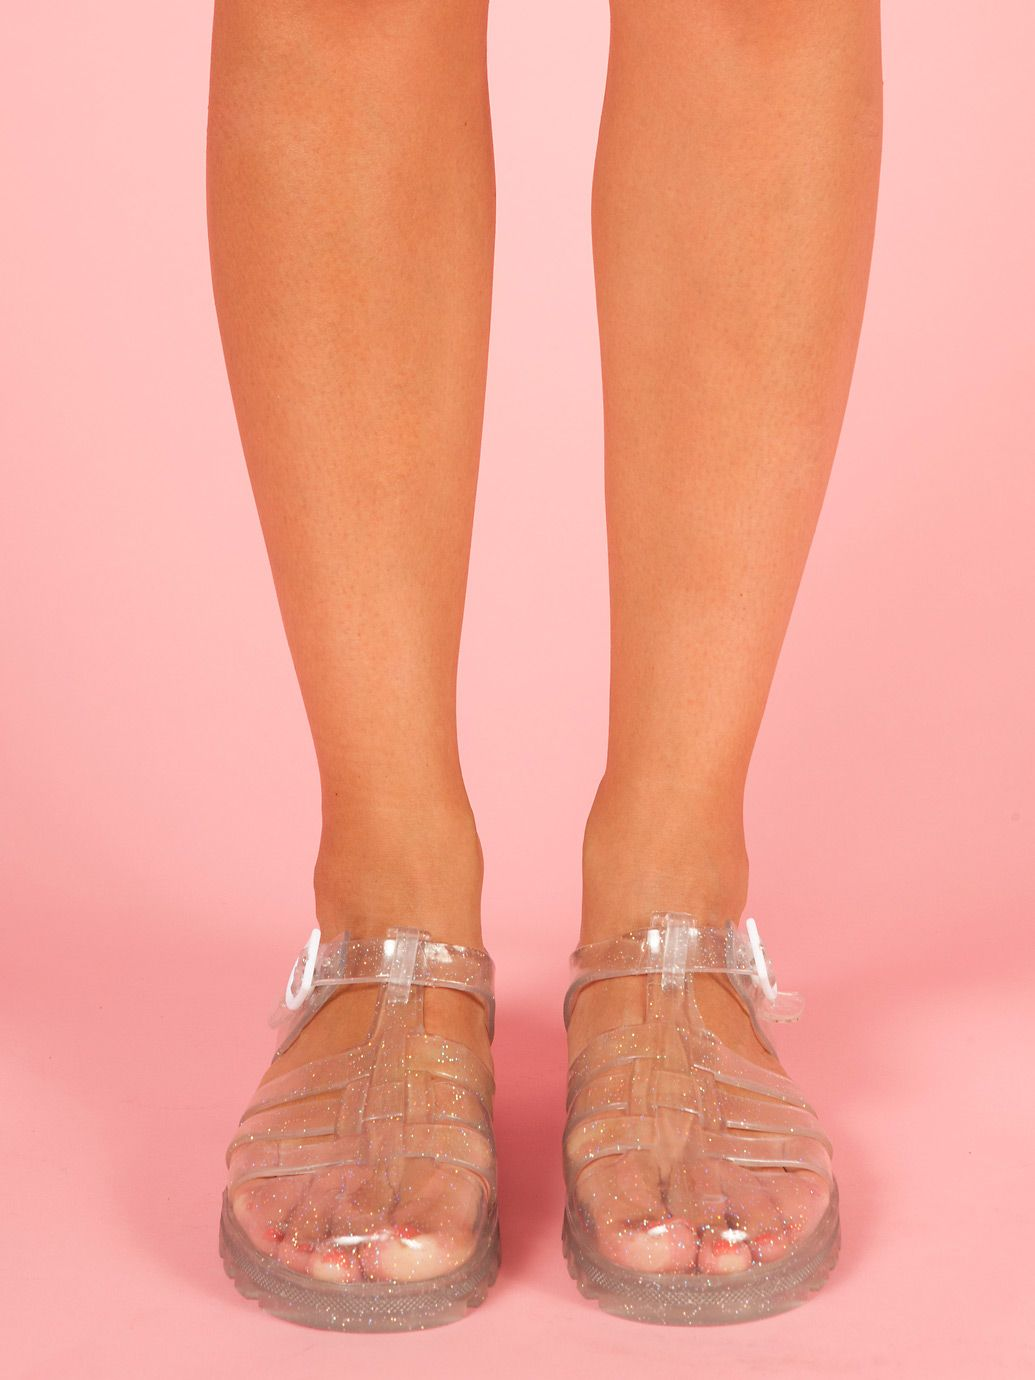 American Apparel - Juju Maxi Jelly Sandals. When not at work 08d1425a735c